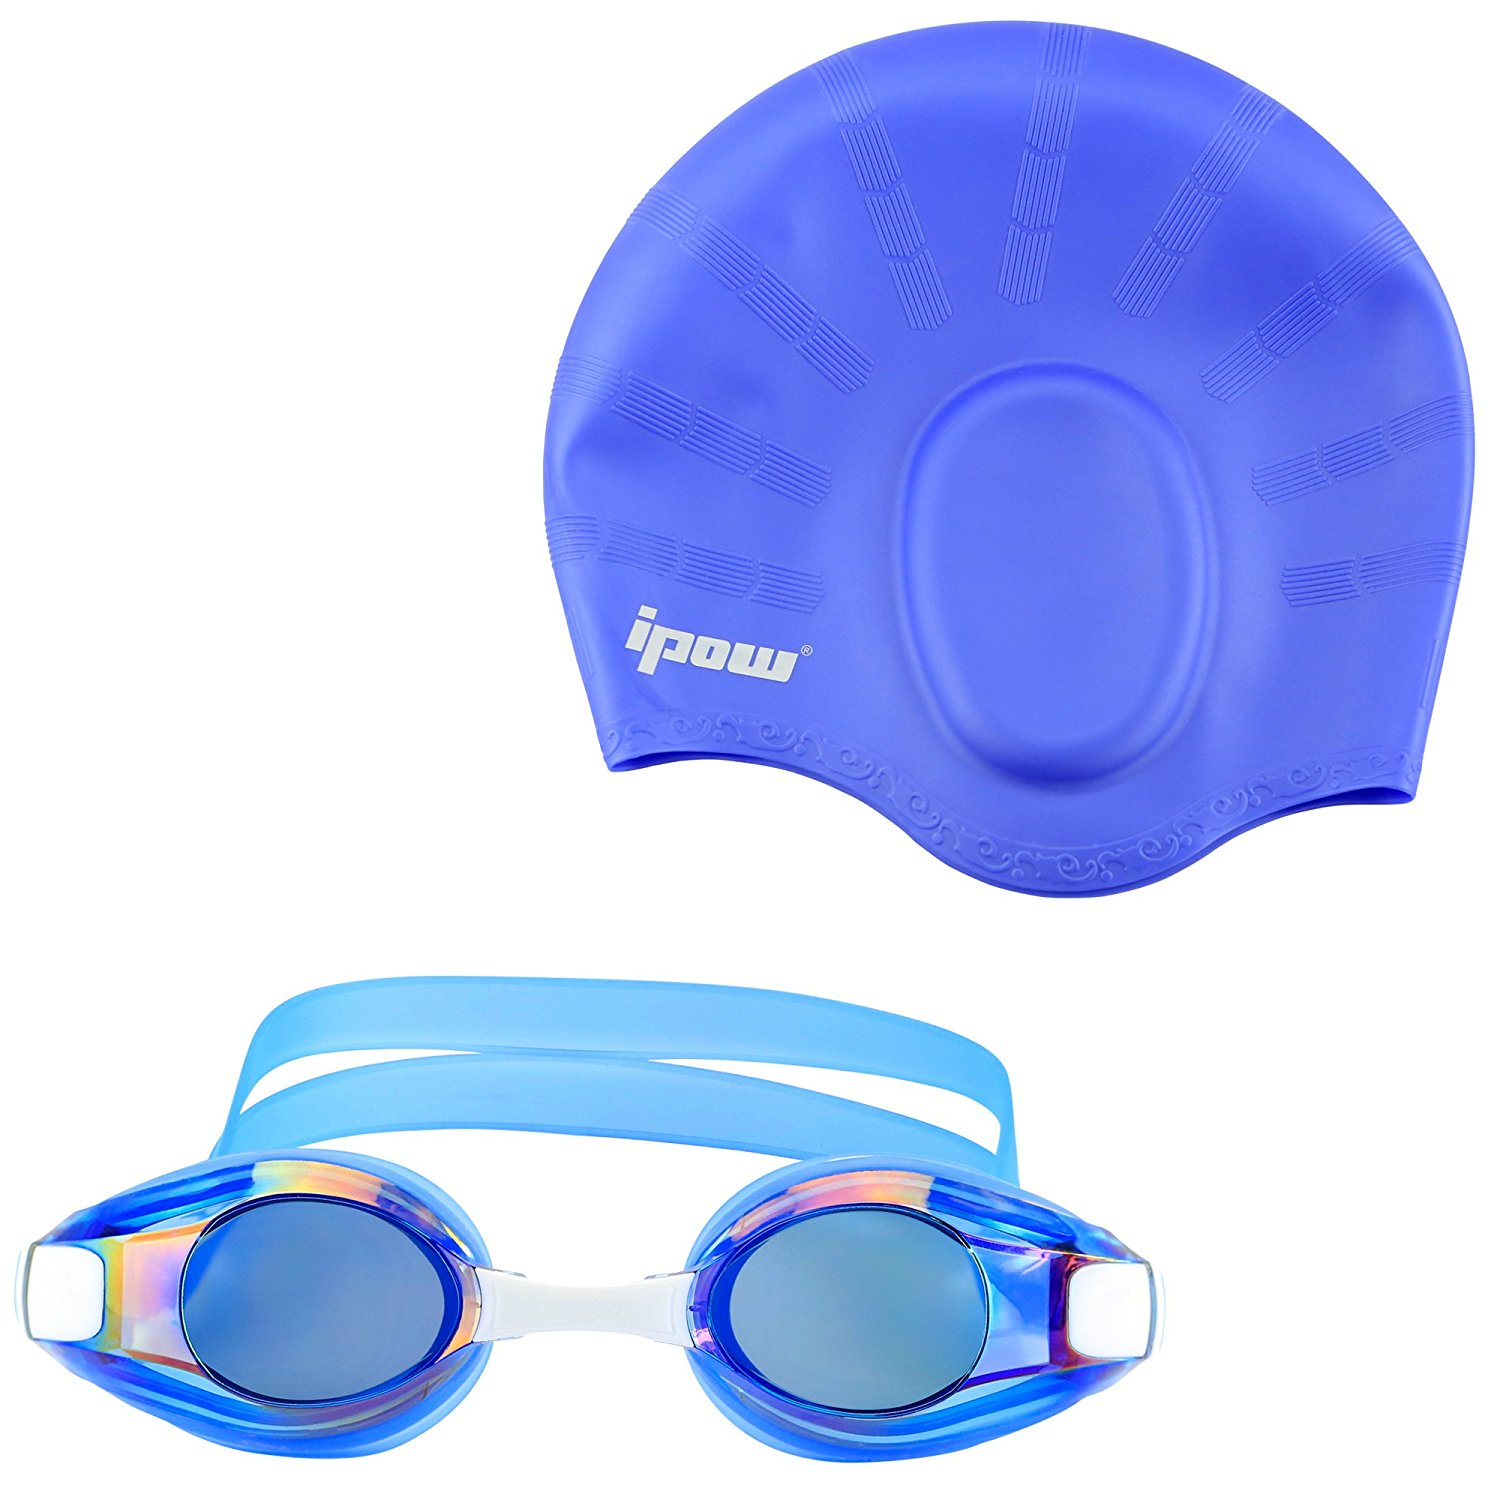 Swim Goggles with Cap, IPOW Anti Fog Goggle Long Hair Ear Protection Silicone Swimming Cap? for Children Kids Men Women... by